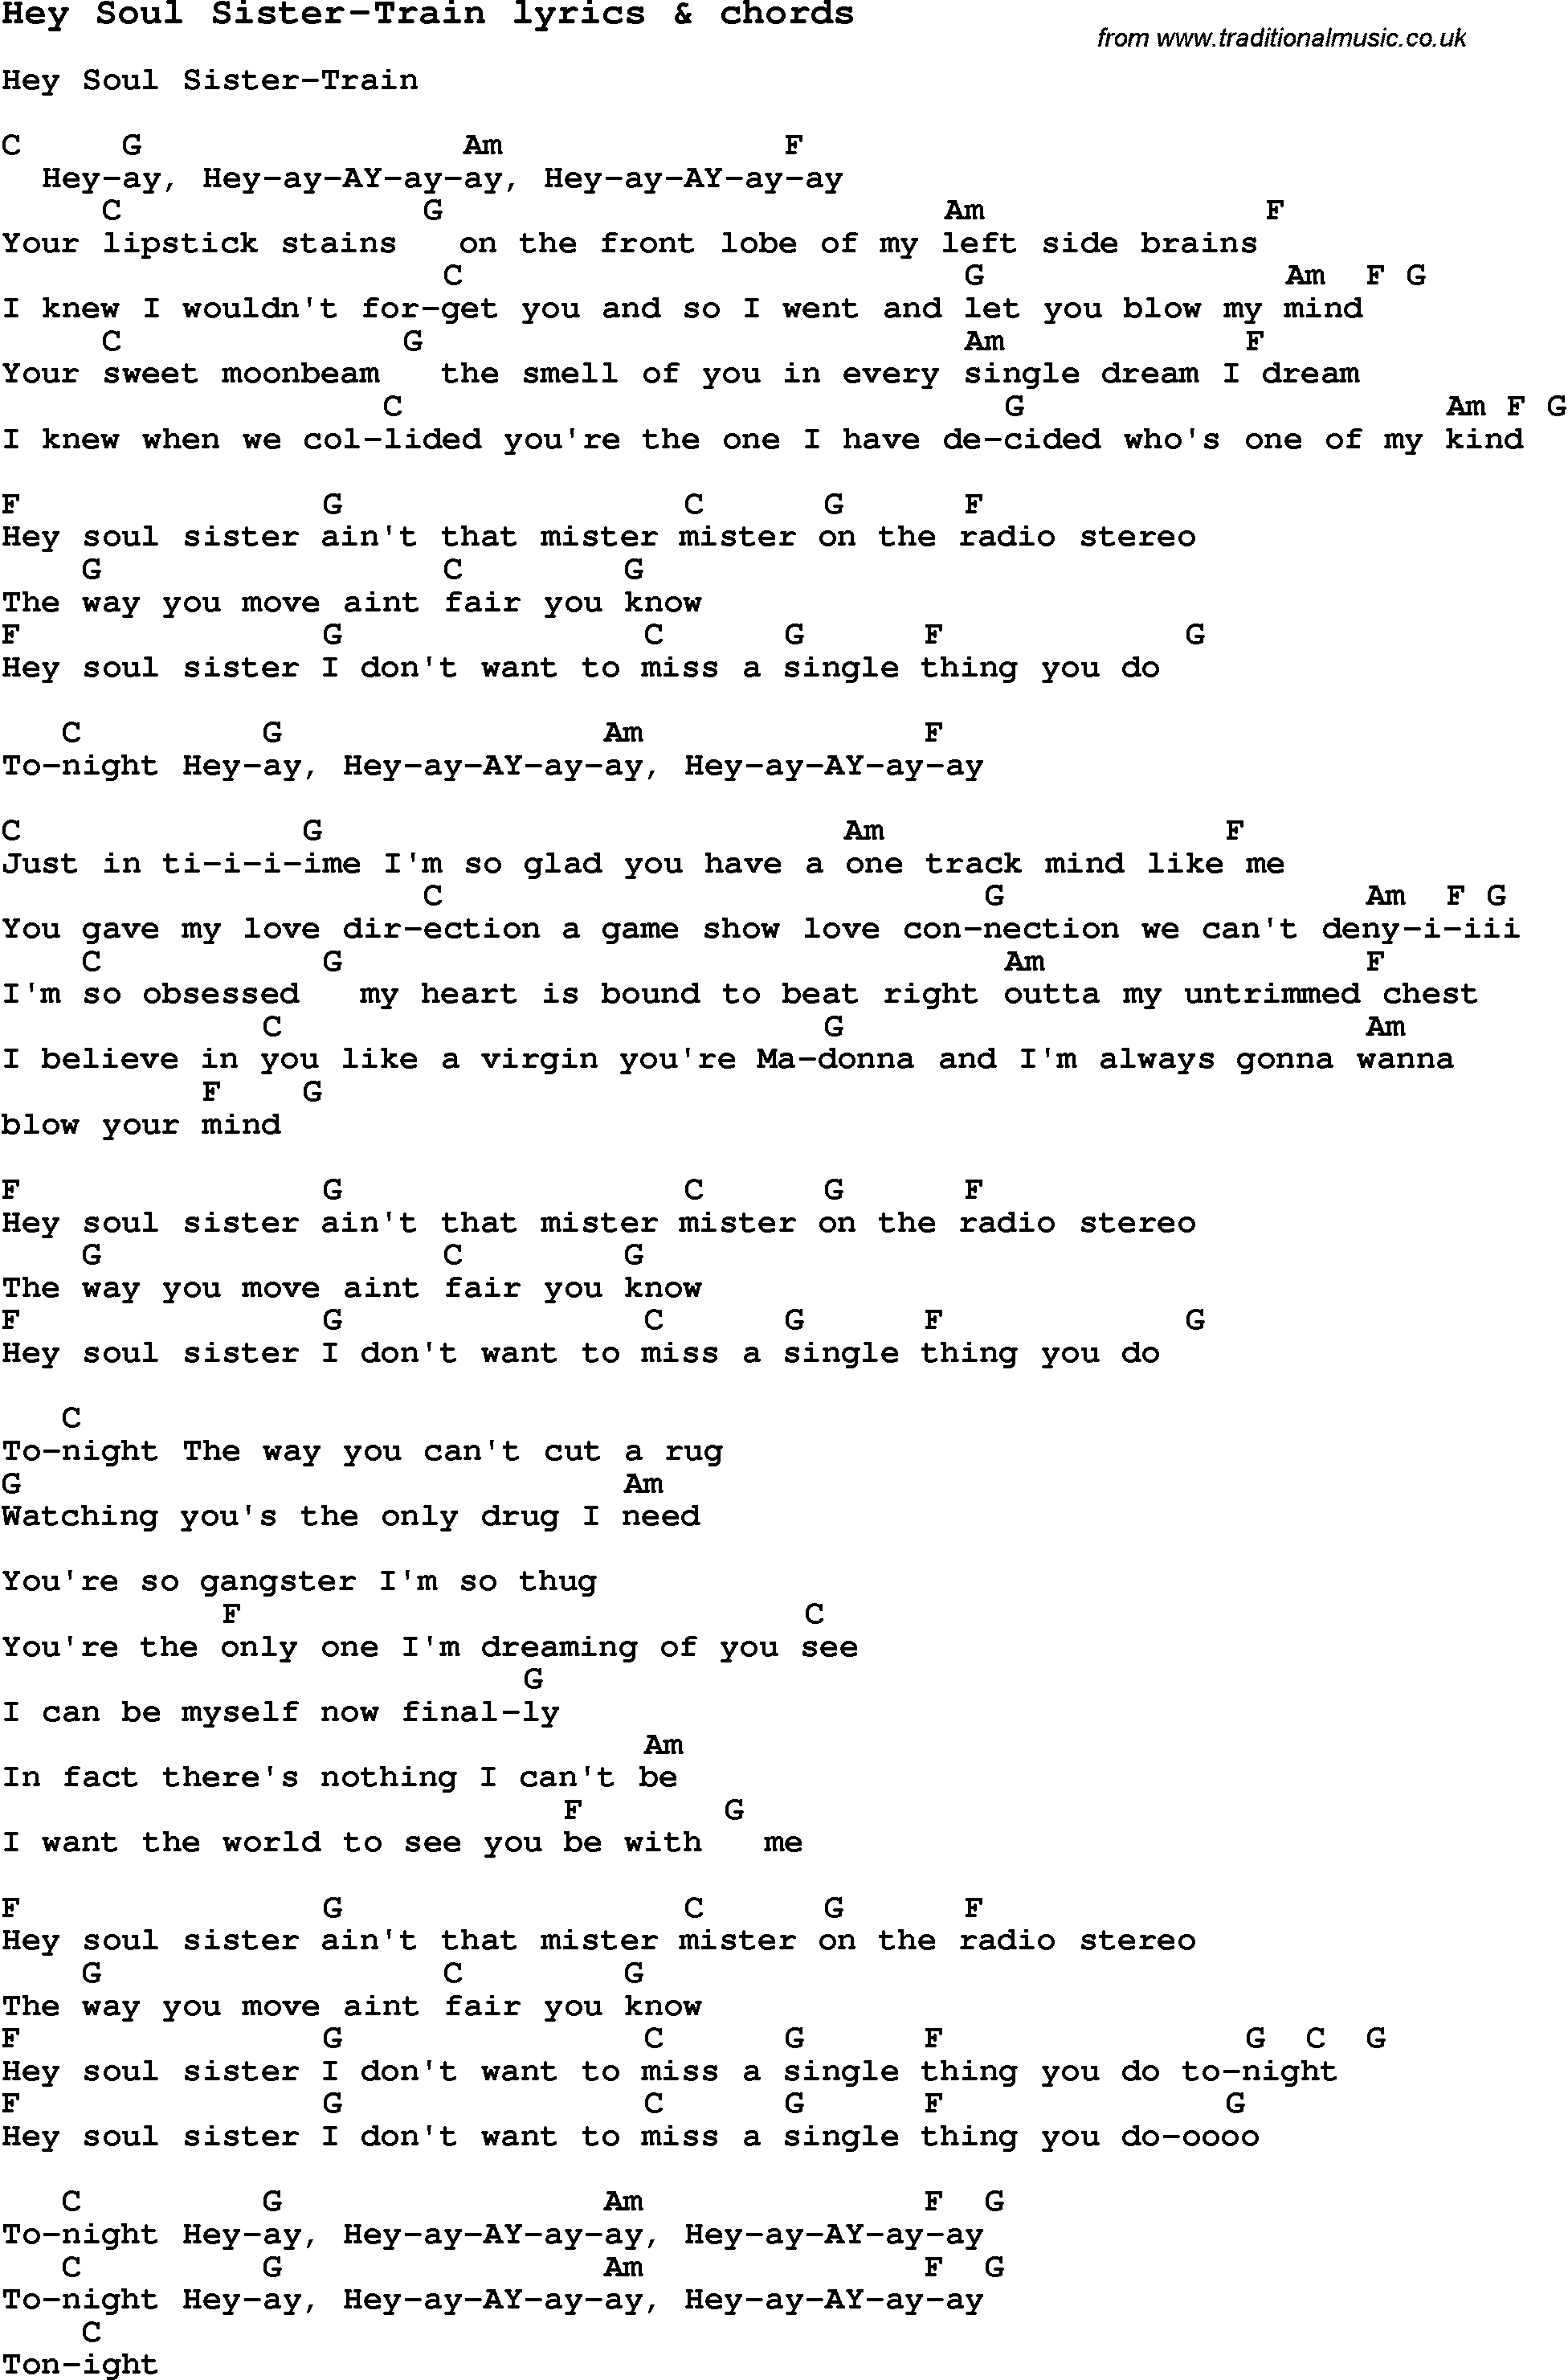 Love song lyrics for hey soul sister train with chords for hey soul sister ukulele chords capo 4 on guitar hexwebz Image collections